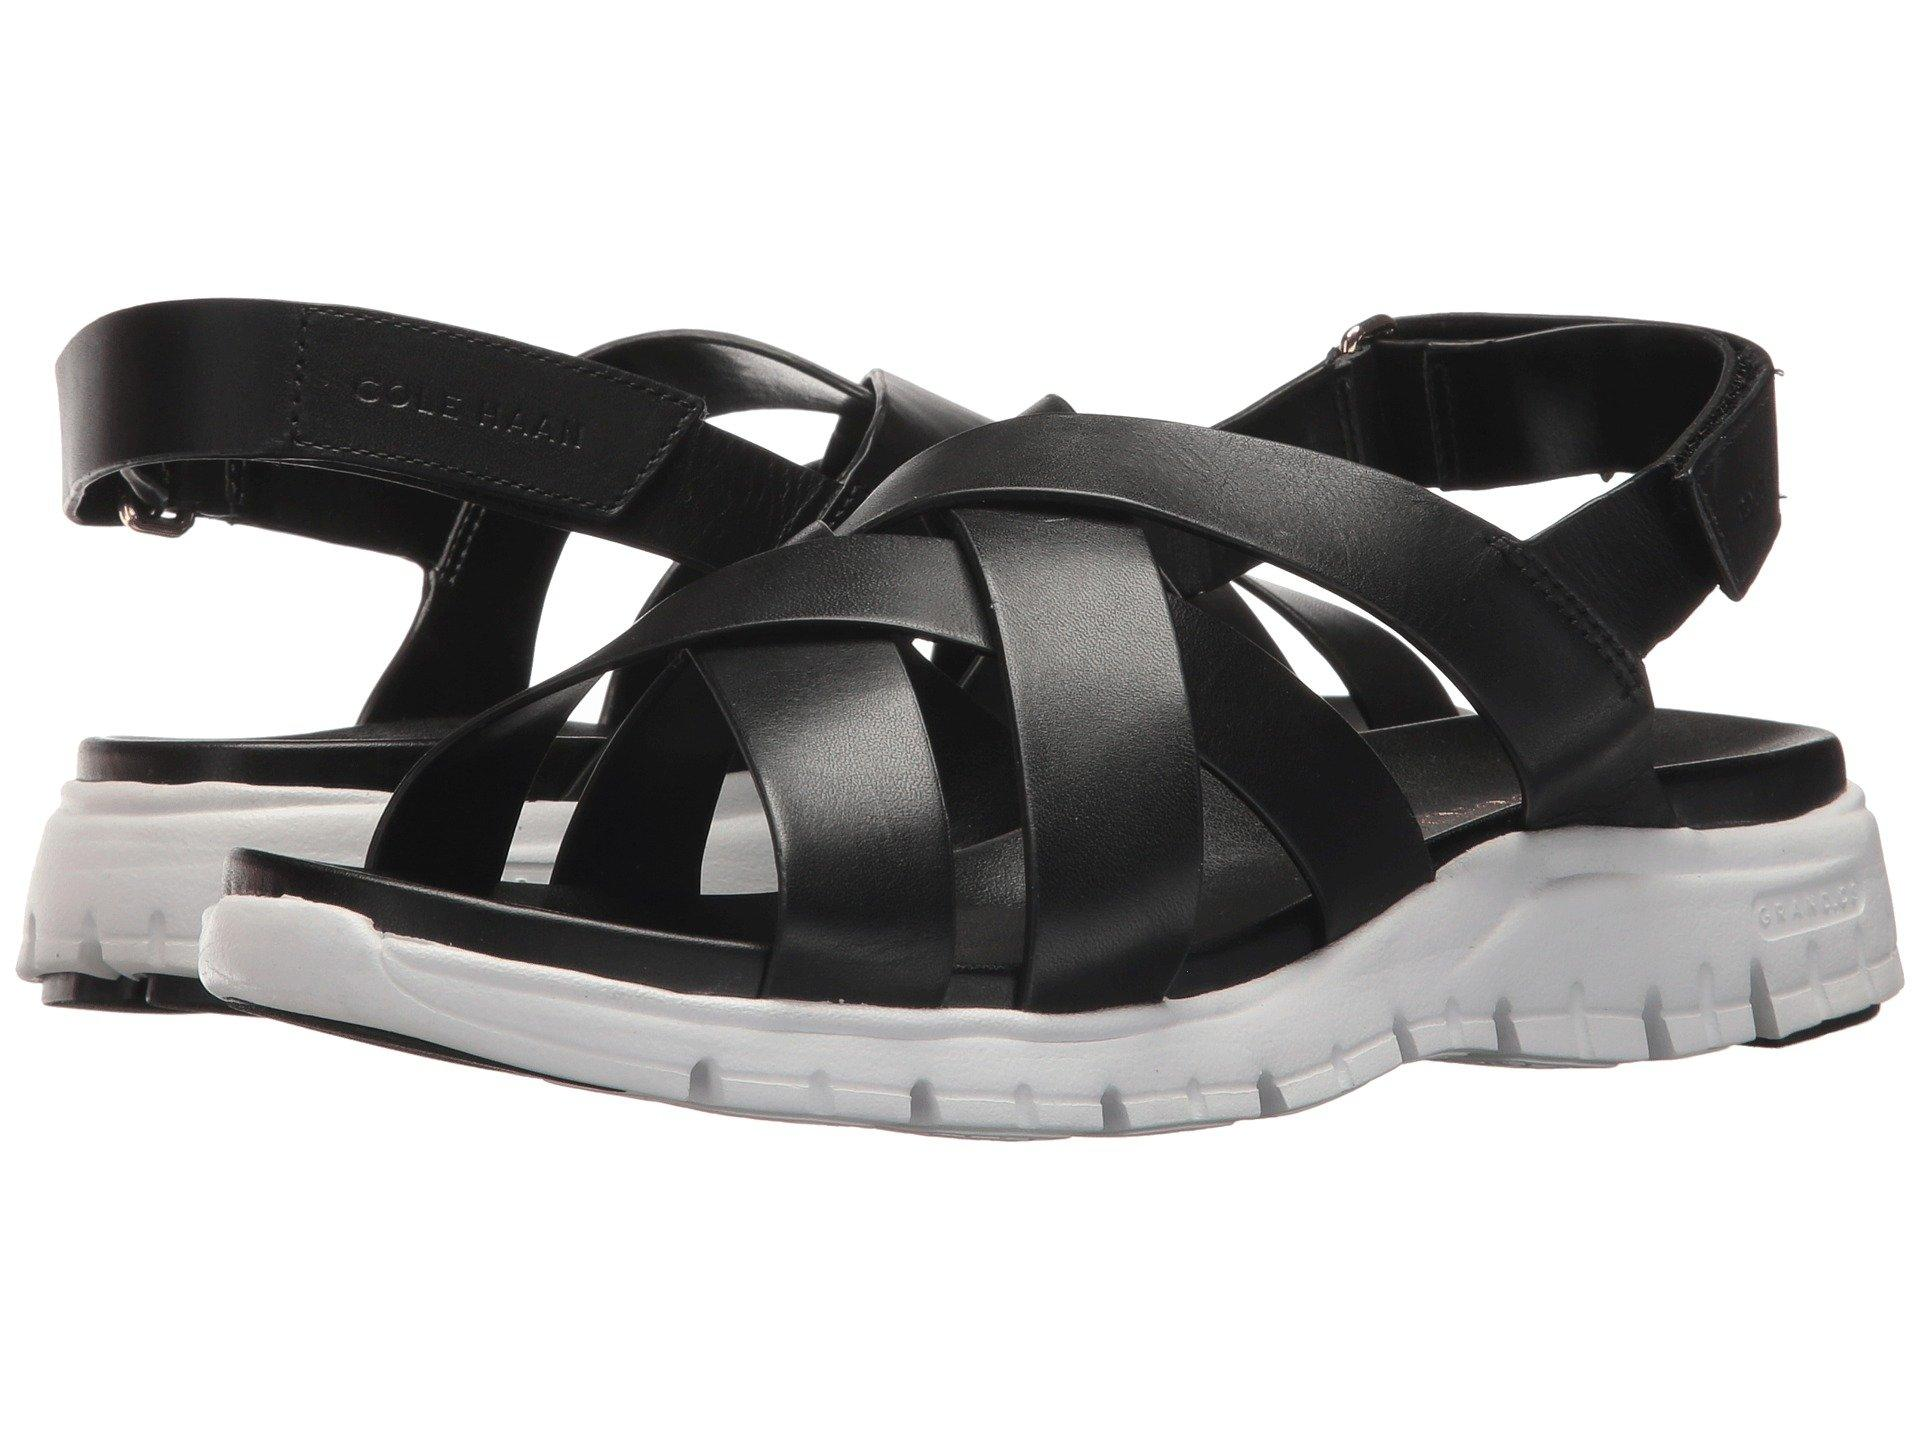 20bc47c97 Cole Haan Zerogrand Crisscross Sandal Ii In Black Leather Optic White